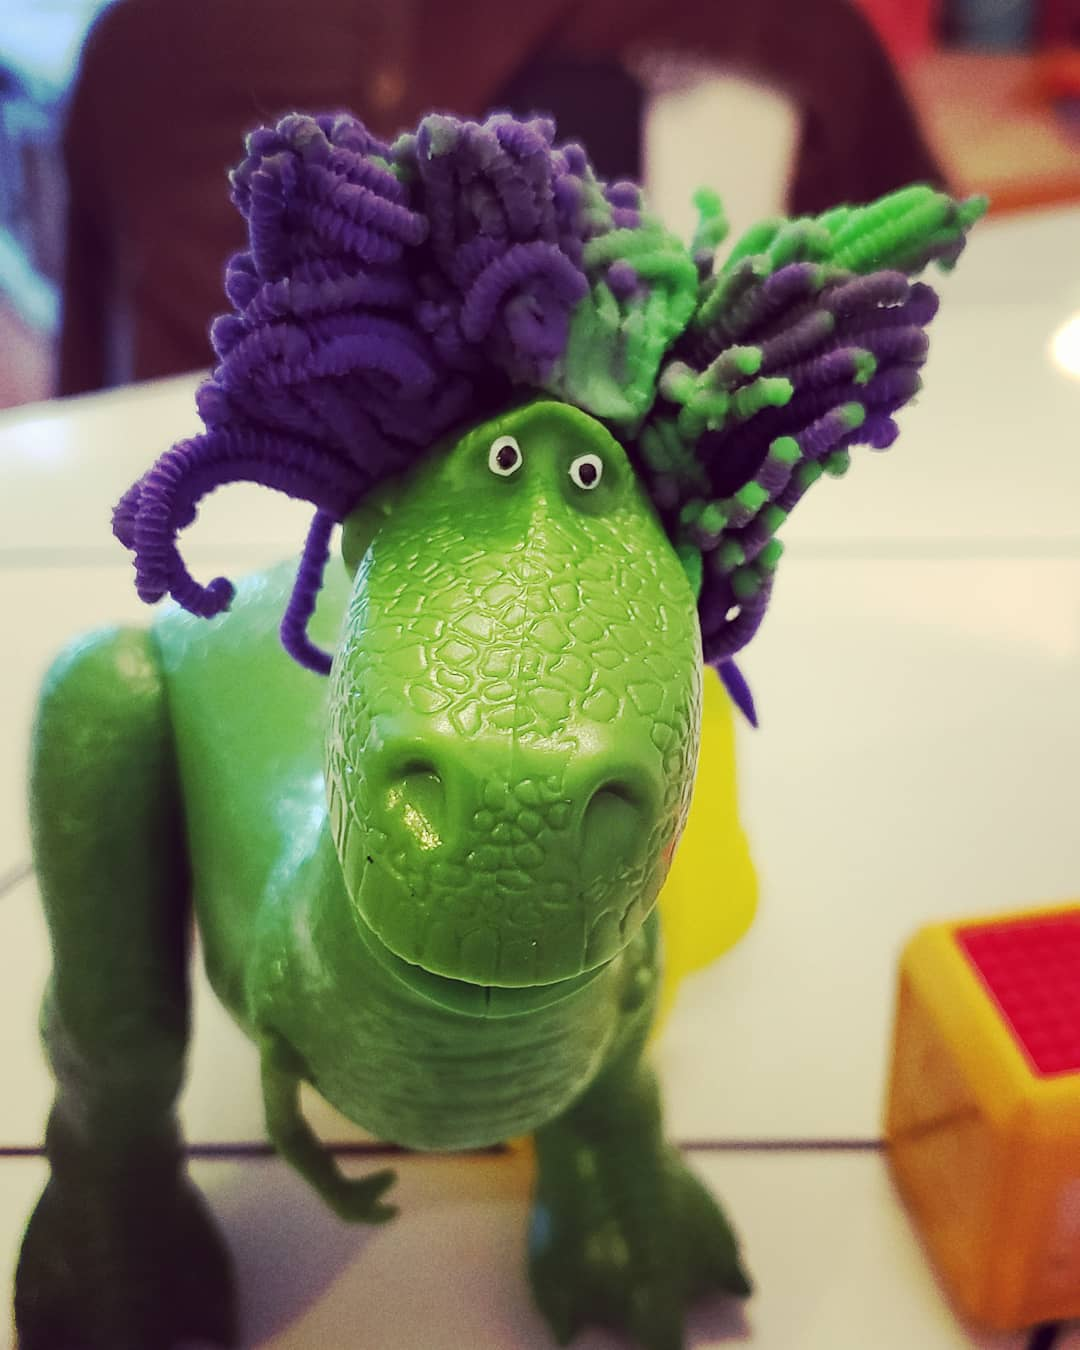 Image description: A Rex dinosaur with a bunch of purple and green Playdough tat looks like hair.